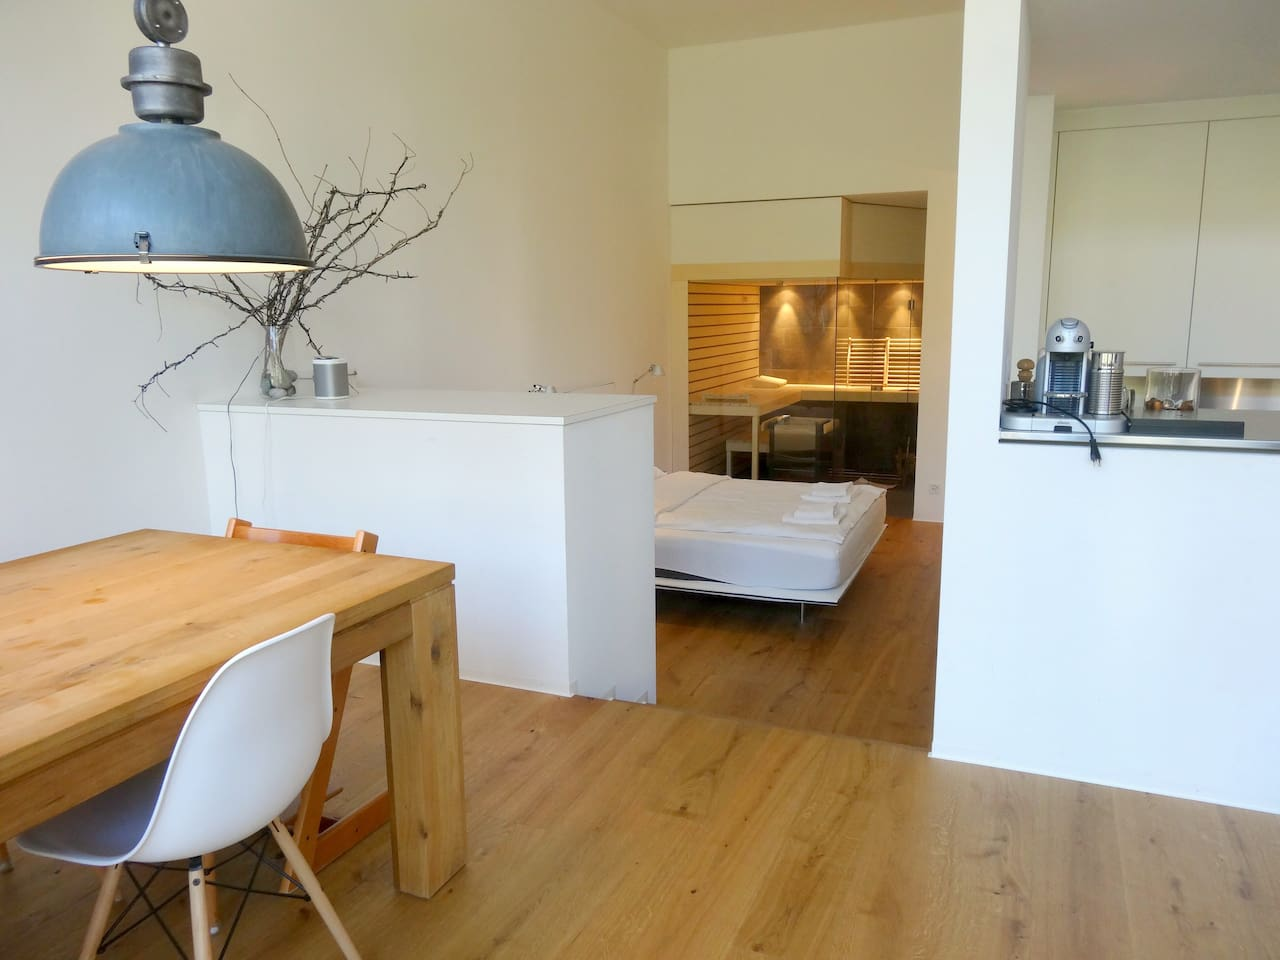 Top modern and comfortable apartment, with plenty of space for 5